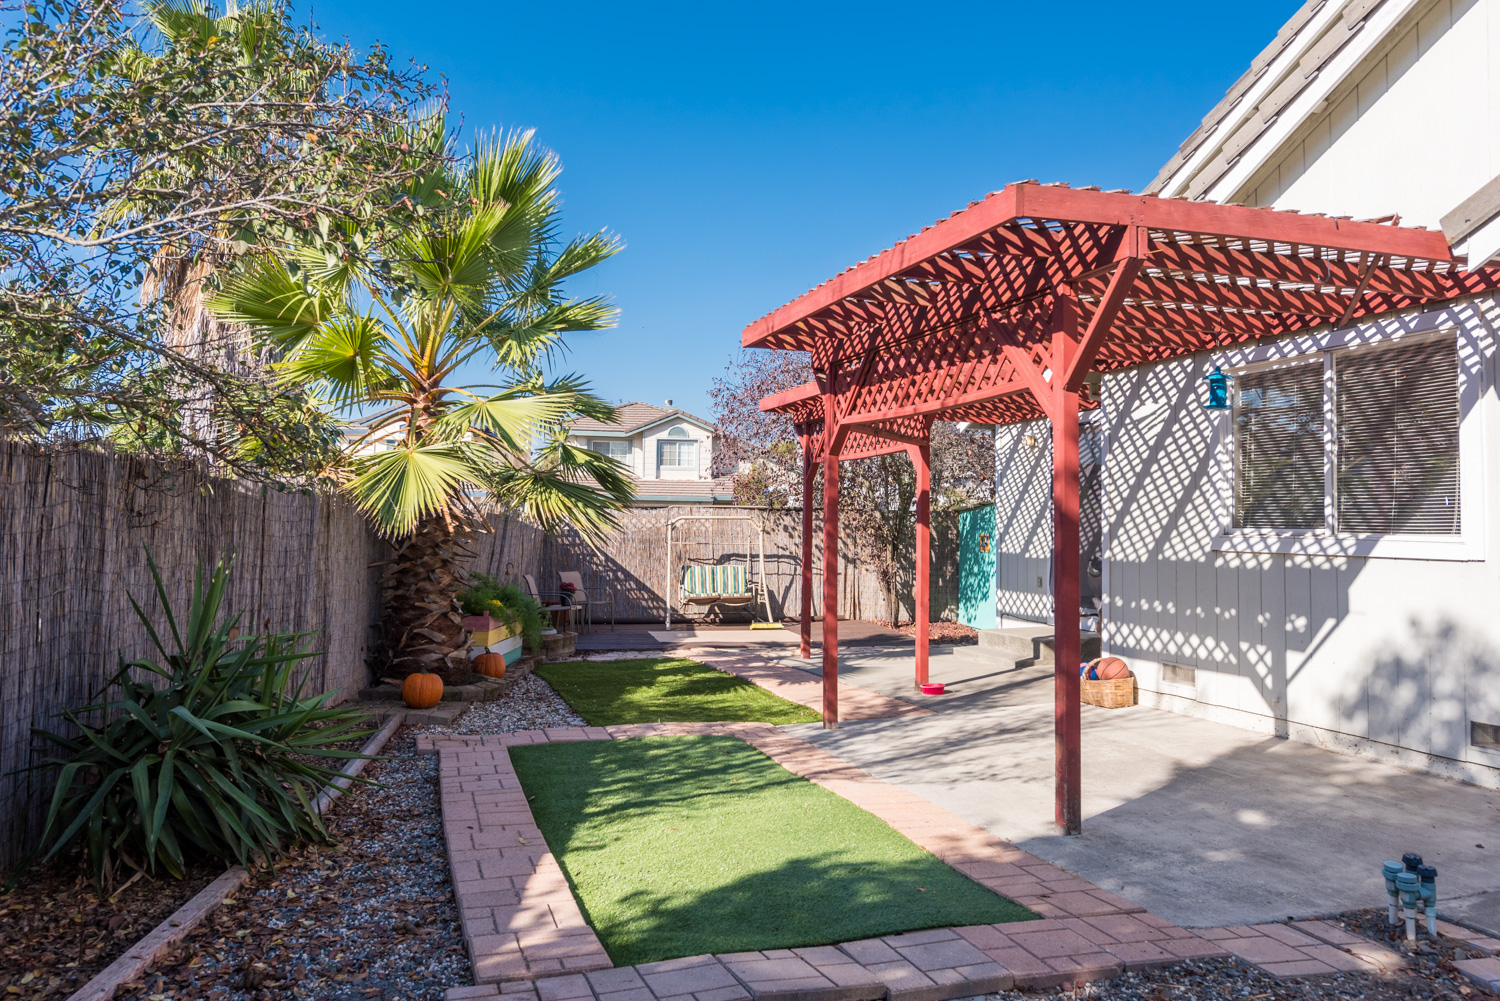 400 Quince St, Windsor, CA 95492